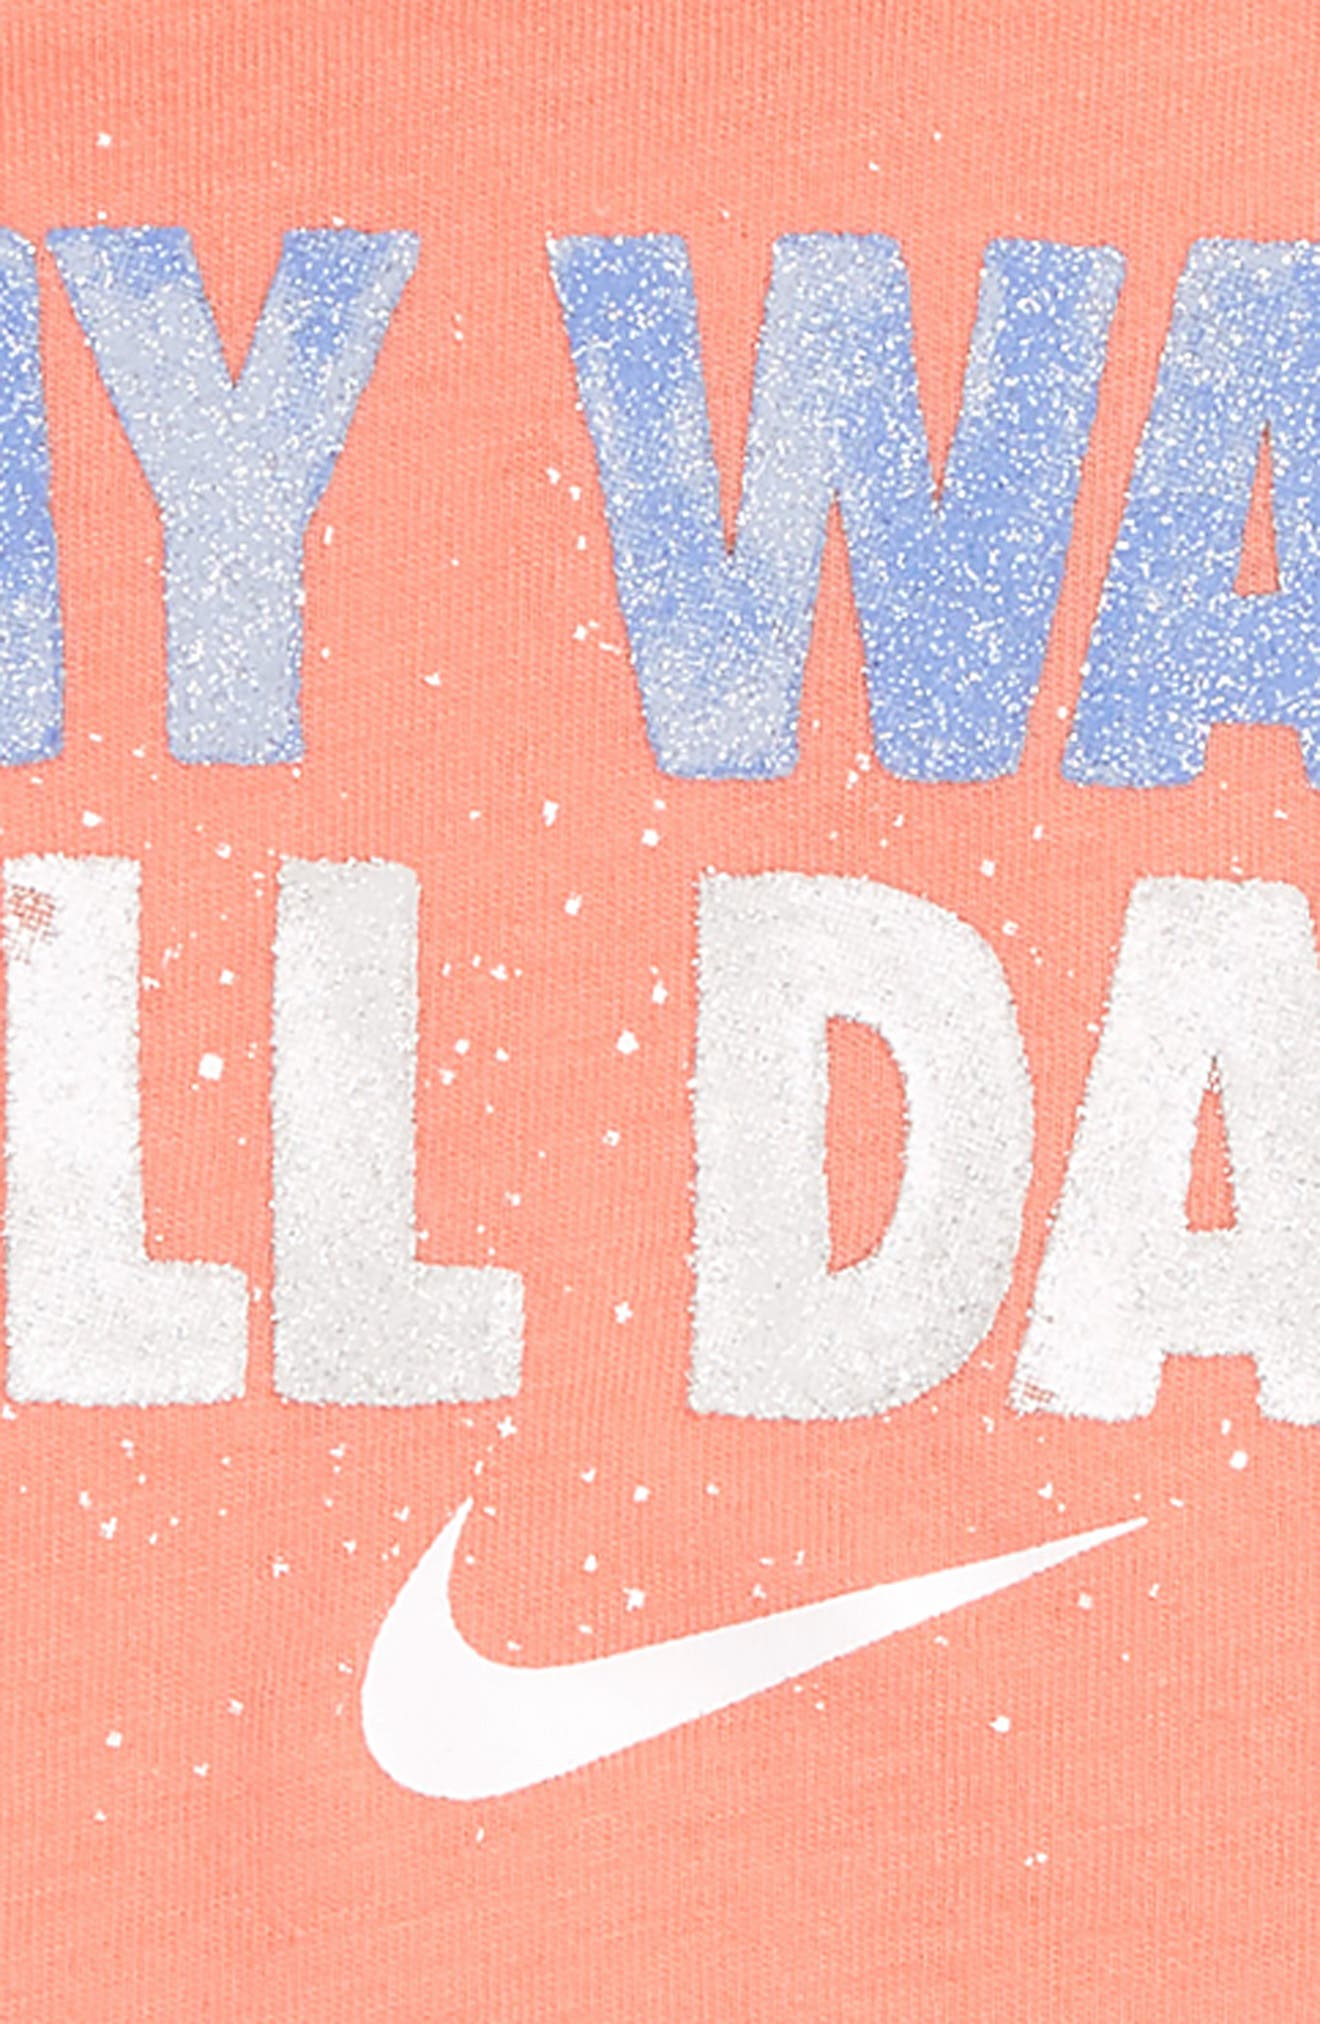 My Way All Day Graphic Tee & Shorts Set,                             Alternate thumbnail 2, color,                             451